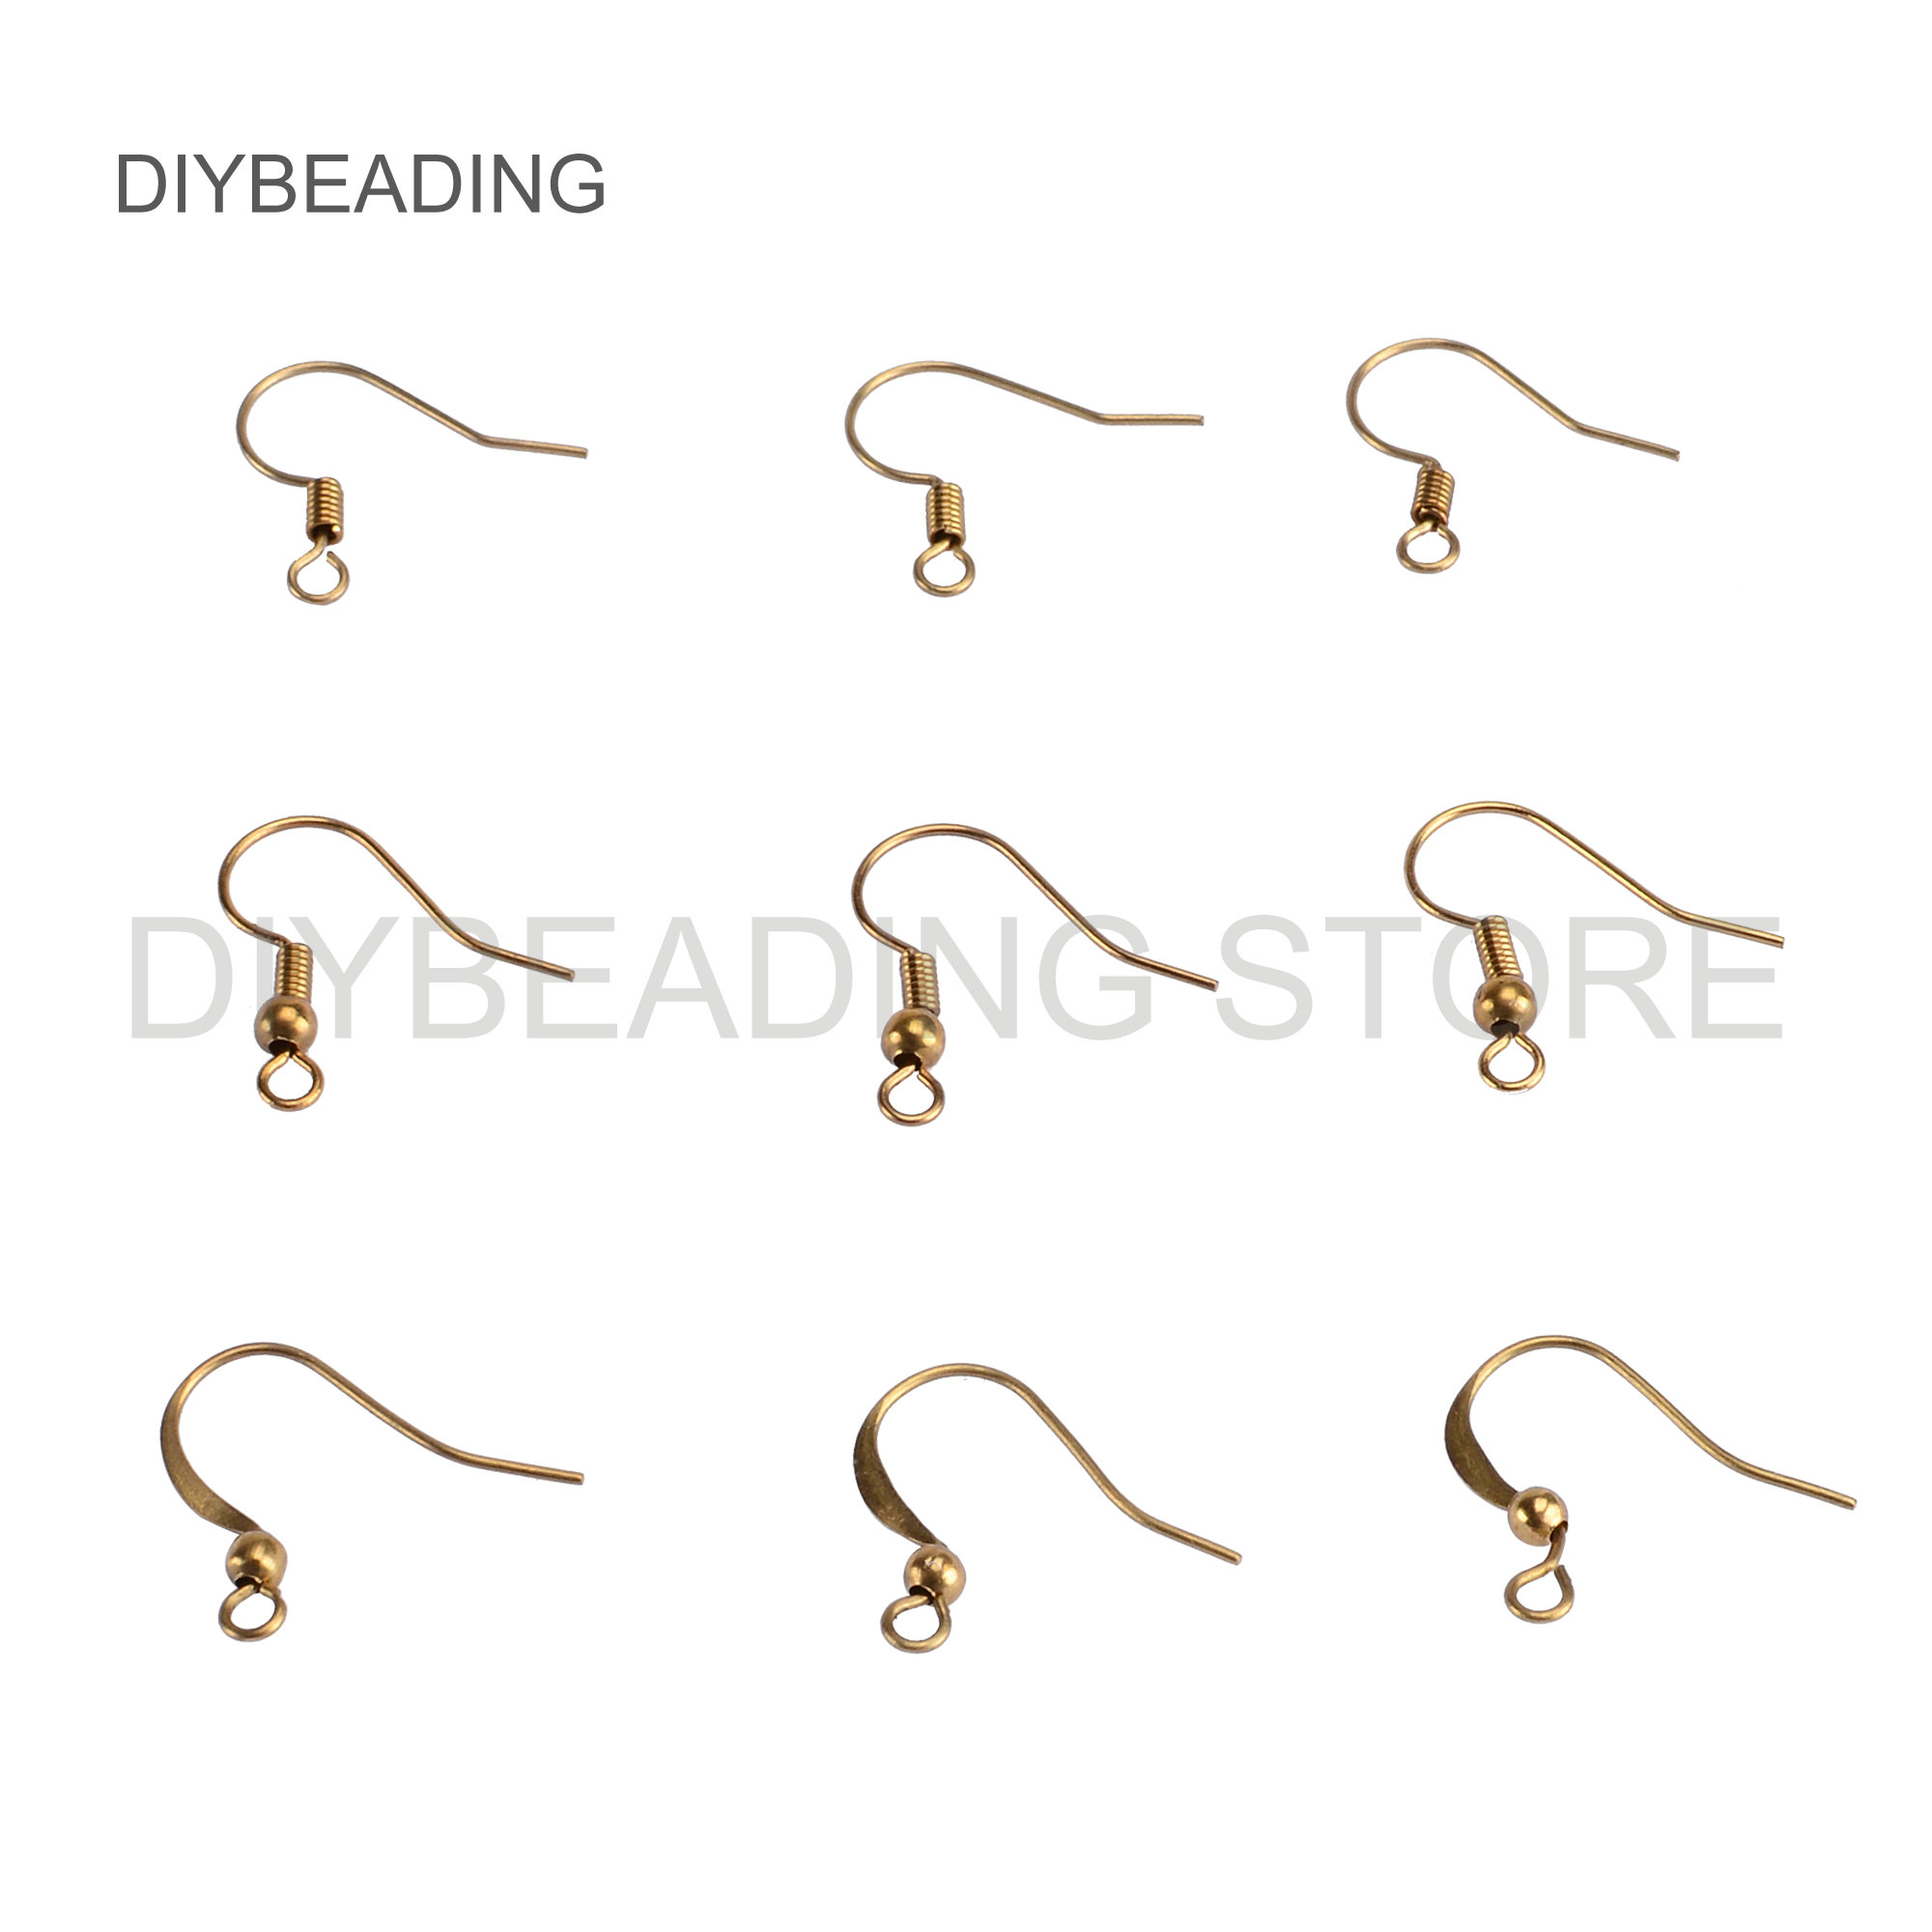 100-500 Pcs Brass Earring Hooks Bulk Wholesale Ear Wires With Ball And Coil French Hooks Component Findings For Making  Earrings